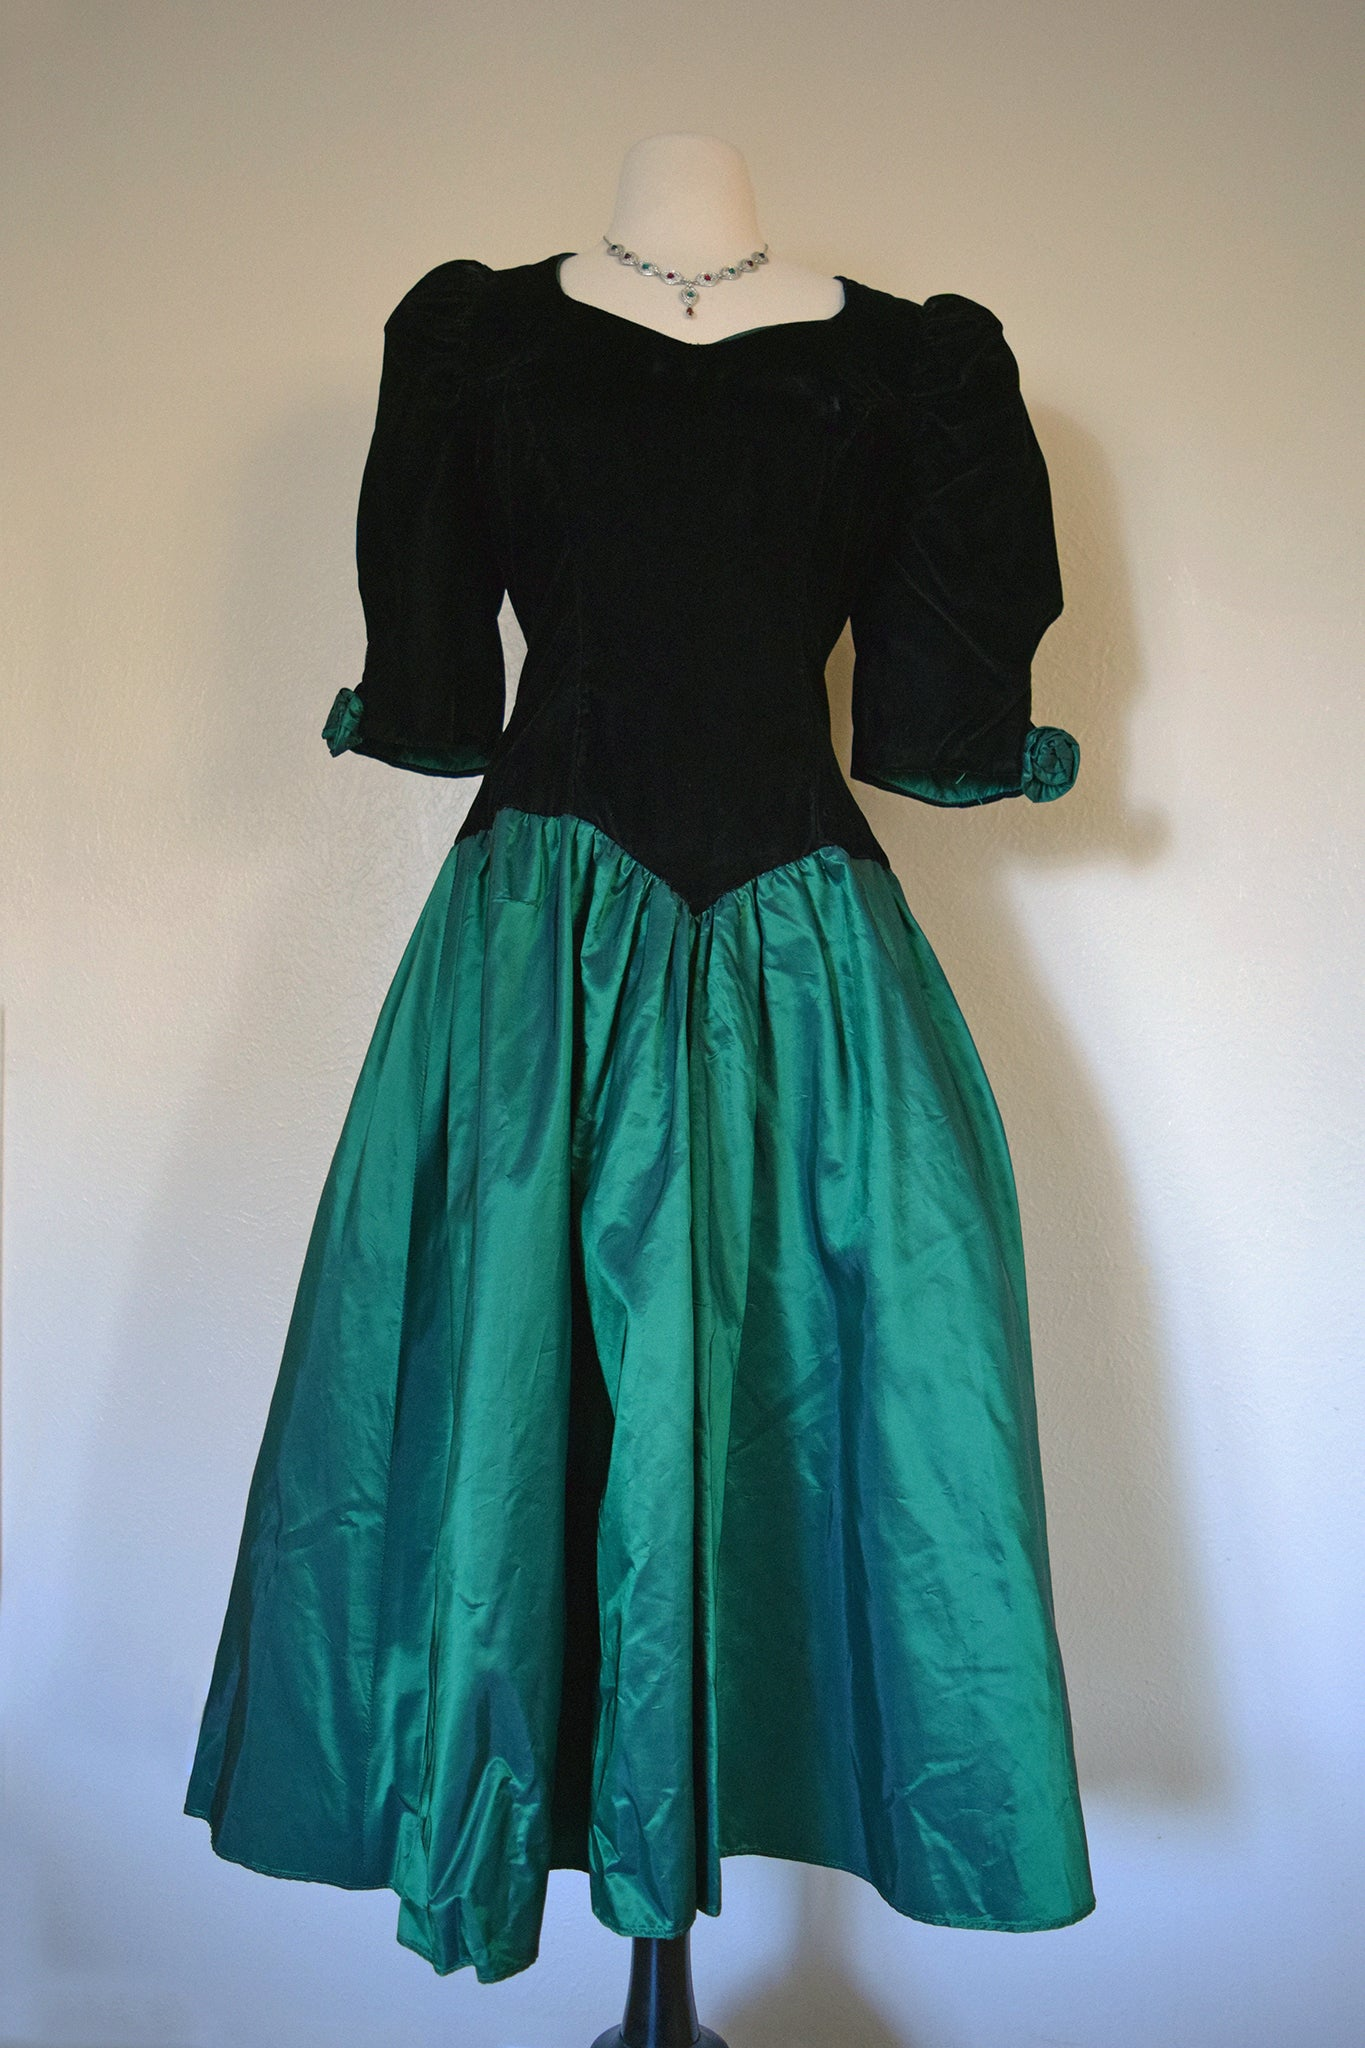 Velvet Emerald Puff Dress